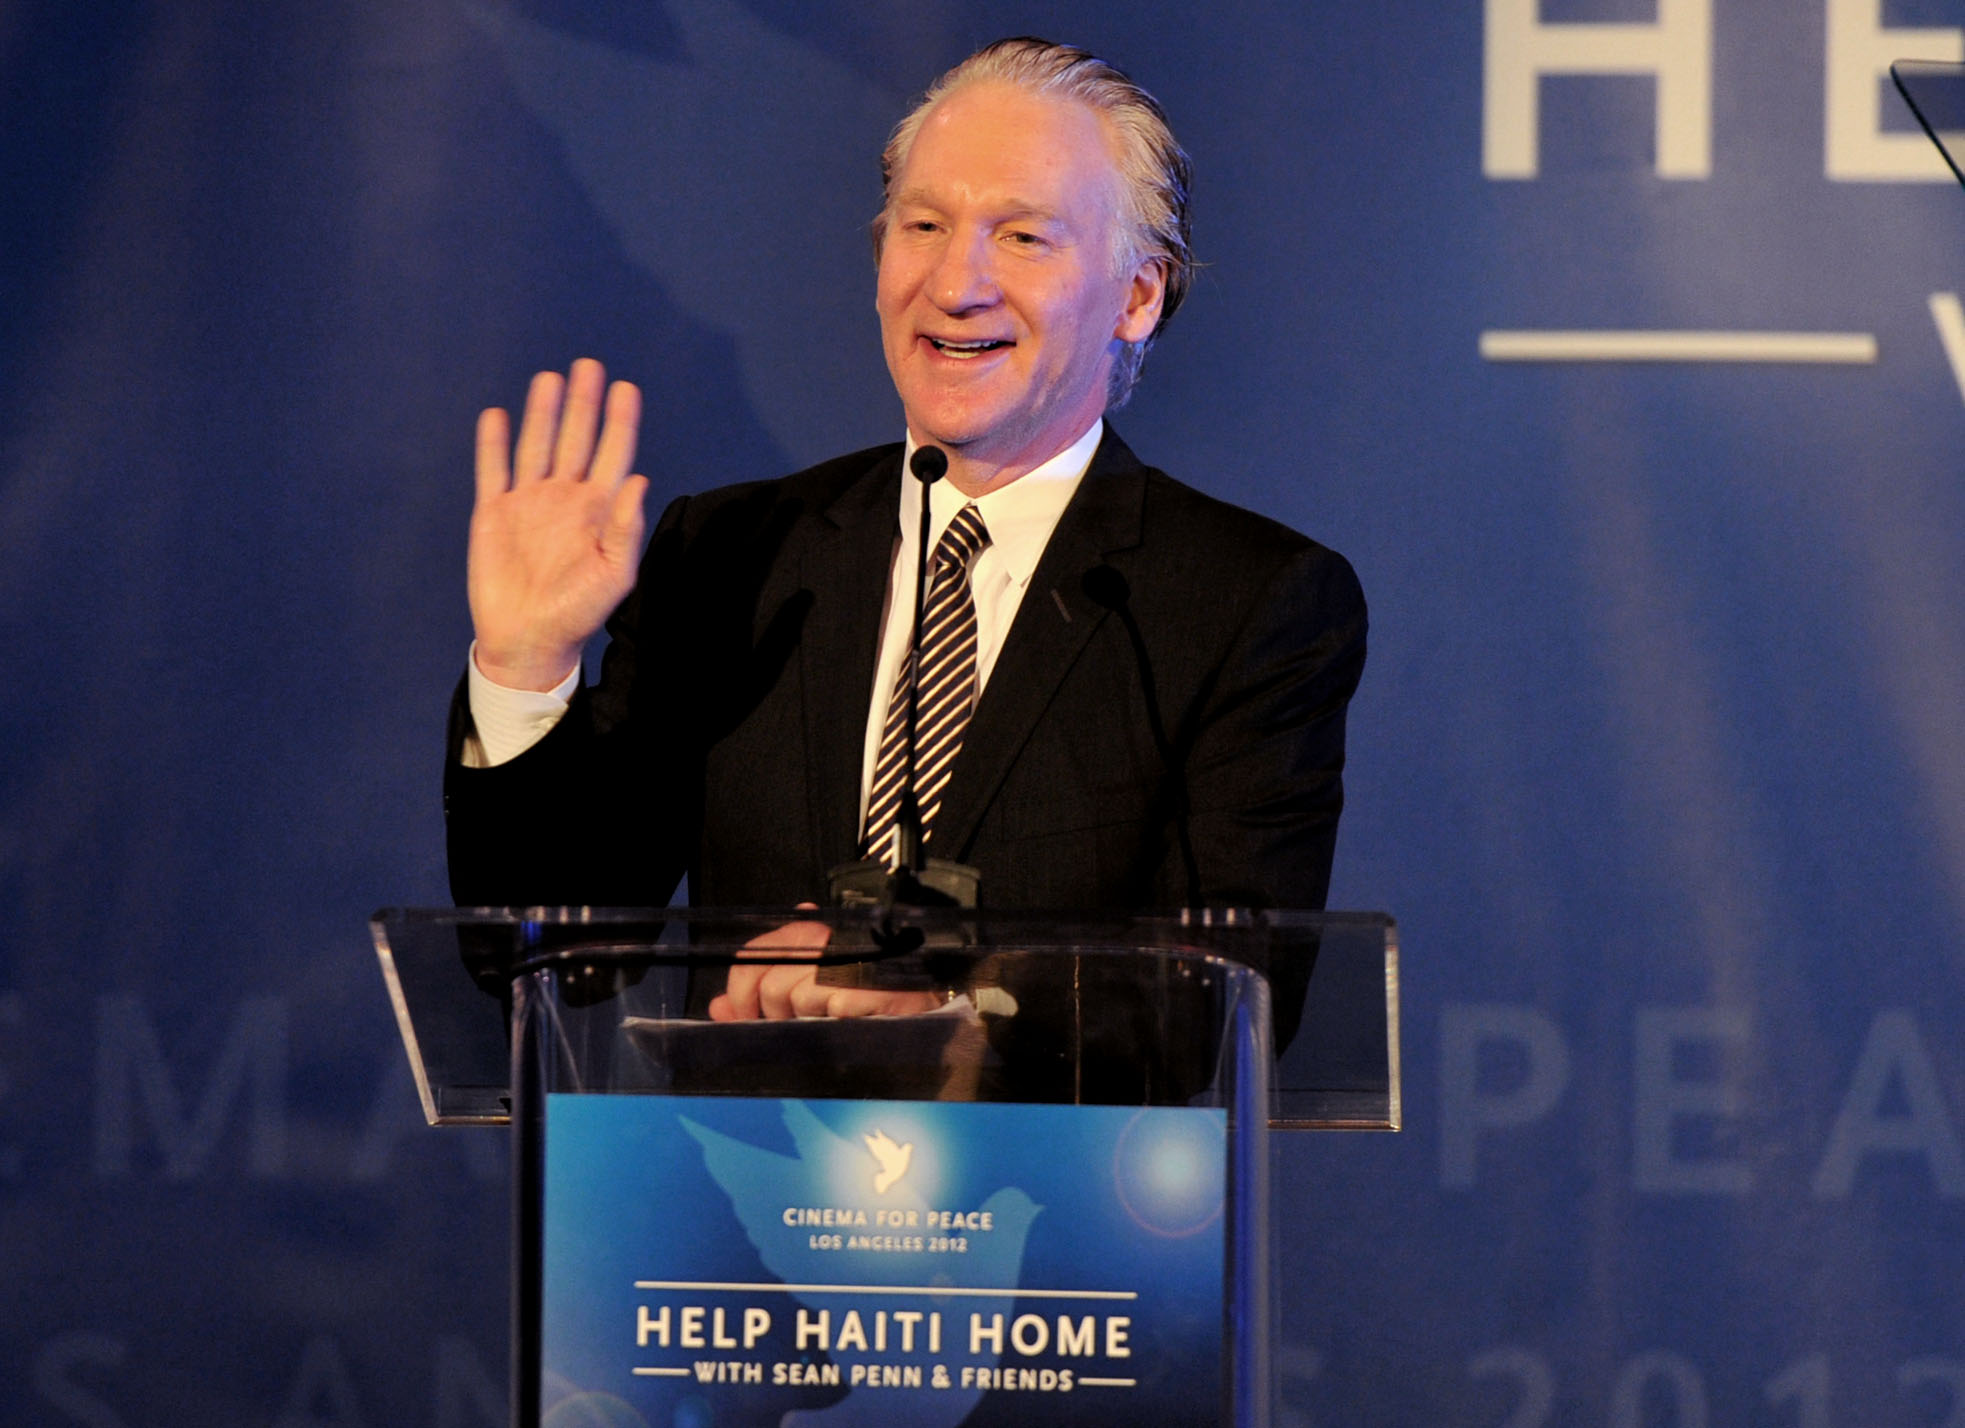 Host Bill Maher speaks onstage at the Cinema For Peace event benefitting J/P Haitian Relief Organization in Los Angeles held at Montage Hotel on January 14, 2012. (Photo: Alberto E. Rodriguez / Getty Images)